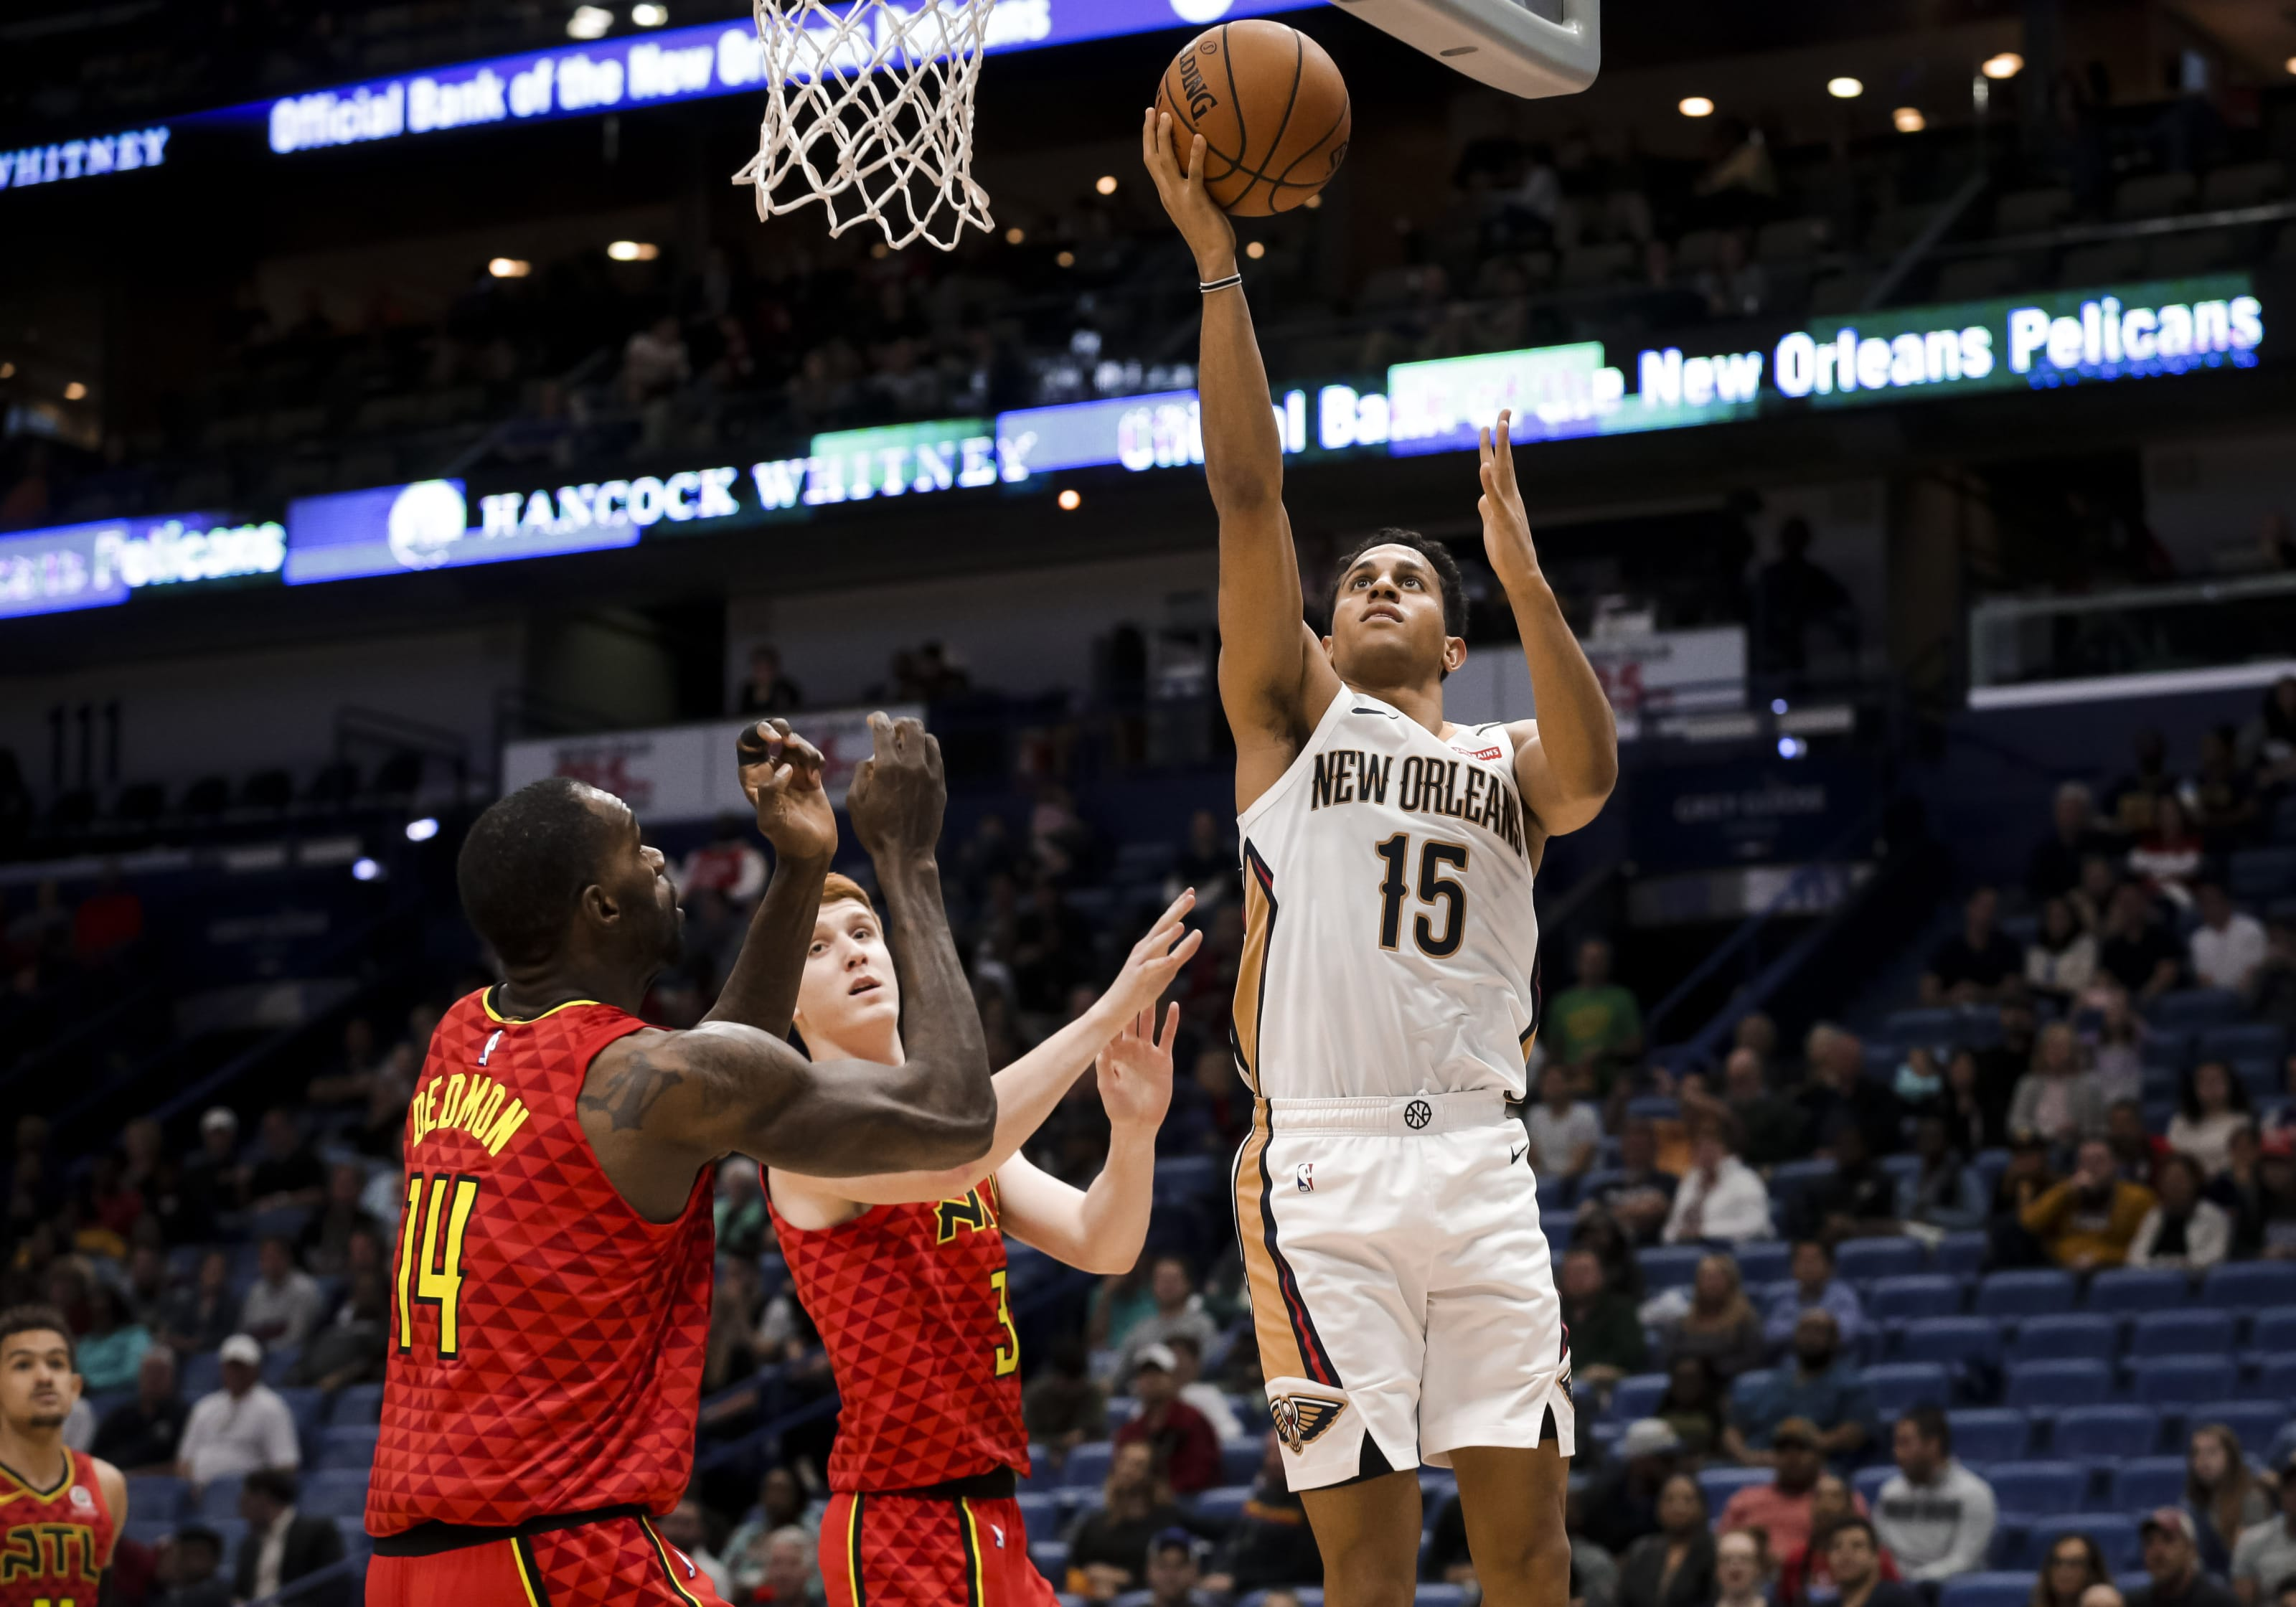 New Orleans Pelicans, Frank Jackson